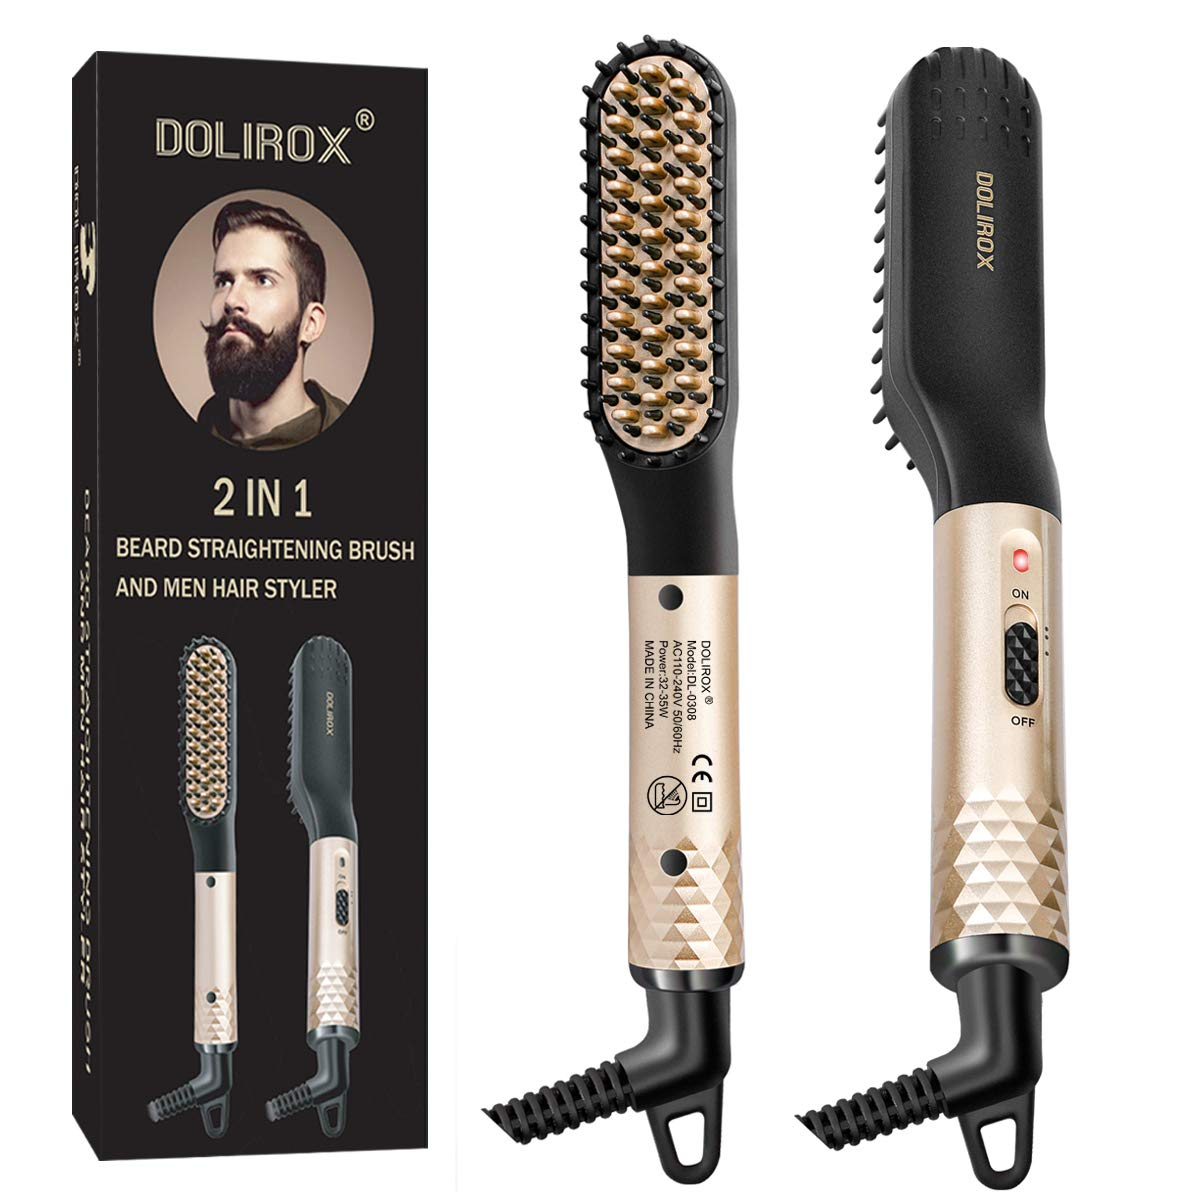 Beard Straightener for men, Multifunctional Hair Styler Electric Hot Comb and Beard Straightening Brush Hair Straightening Comb with Dual Voltage 110-240V Great for Travel & Mens Stocking Stuffers by DOLIROX